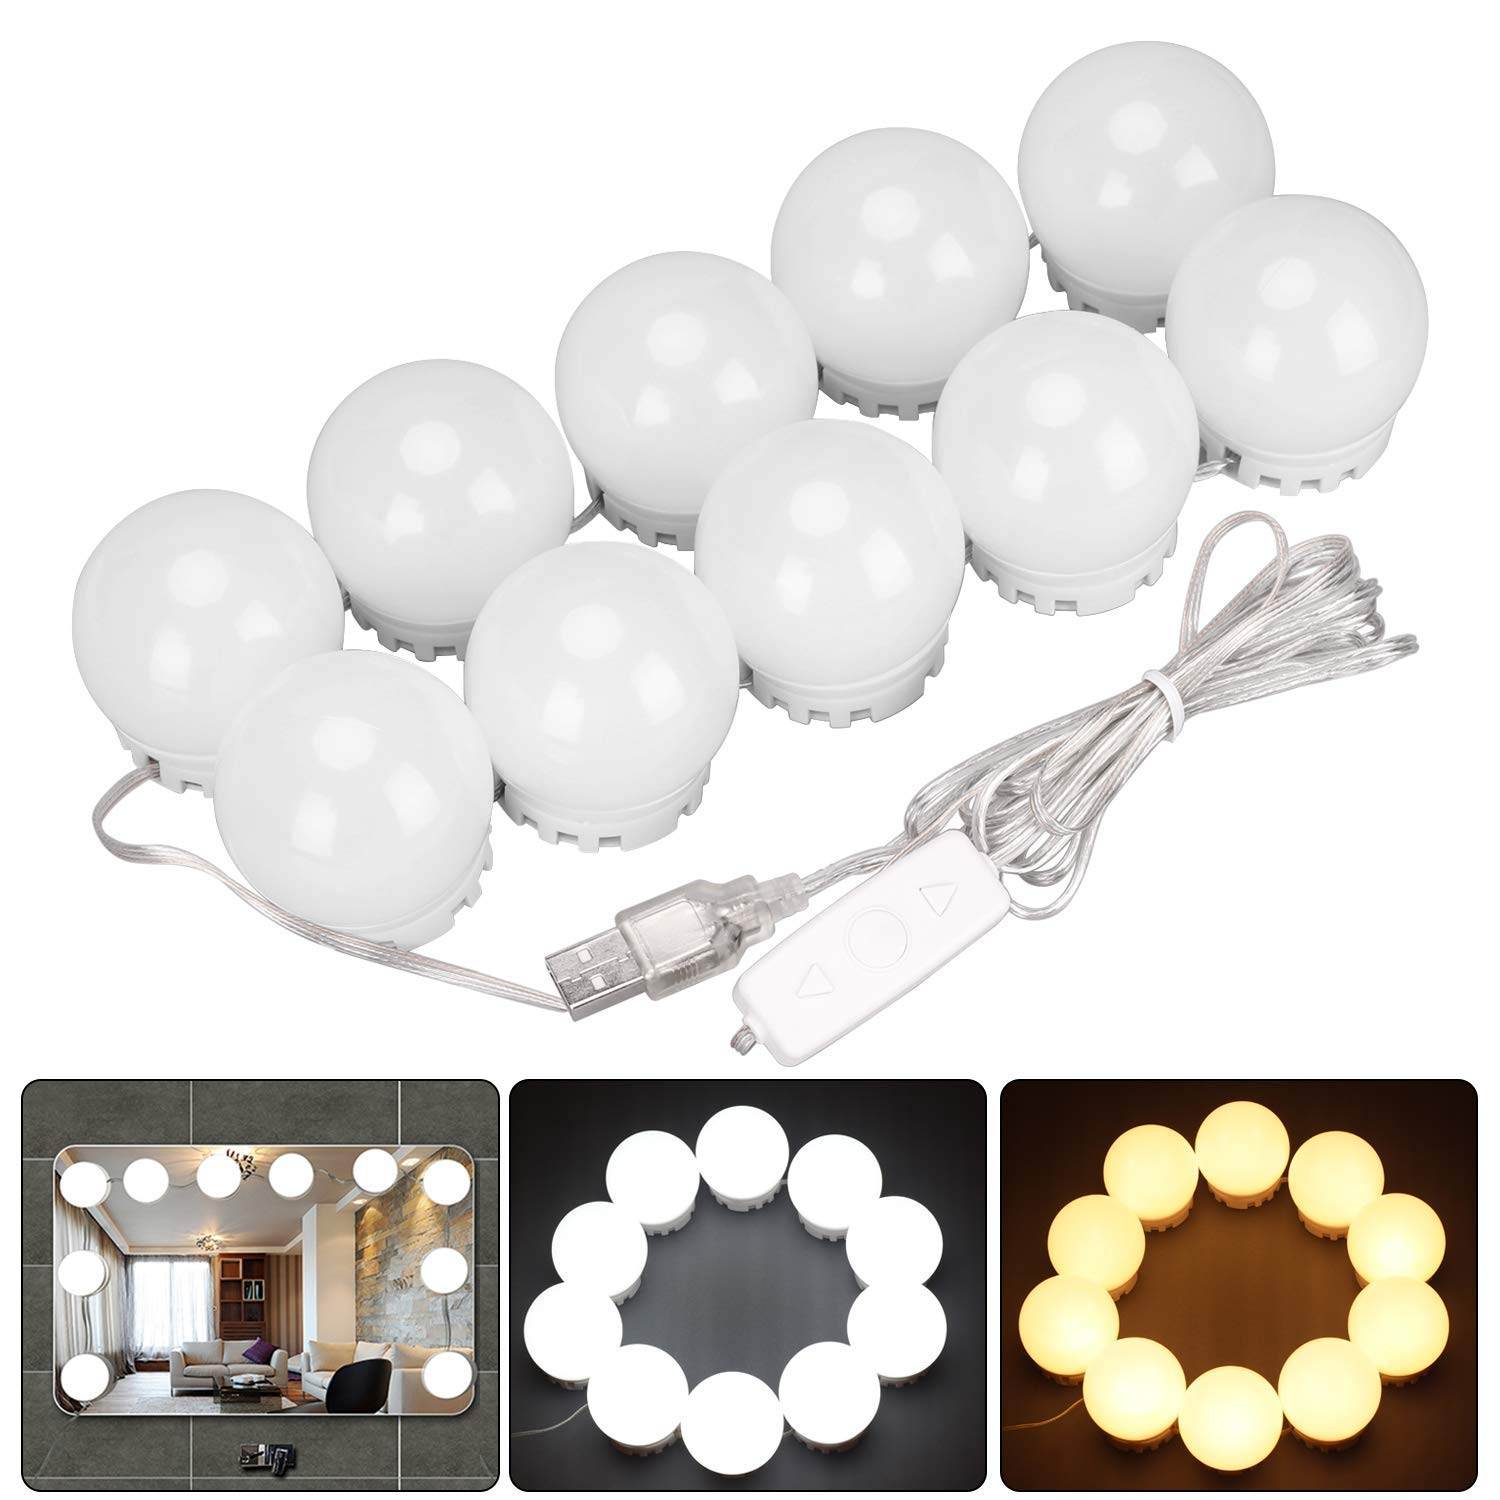 led-vanity-mirror-lights-kit-usb-powered-hollywood-style-10-dimmable-bulbs-makeup-lighting-fixture-strip-make-up-dressing-table